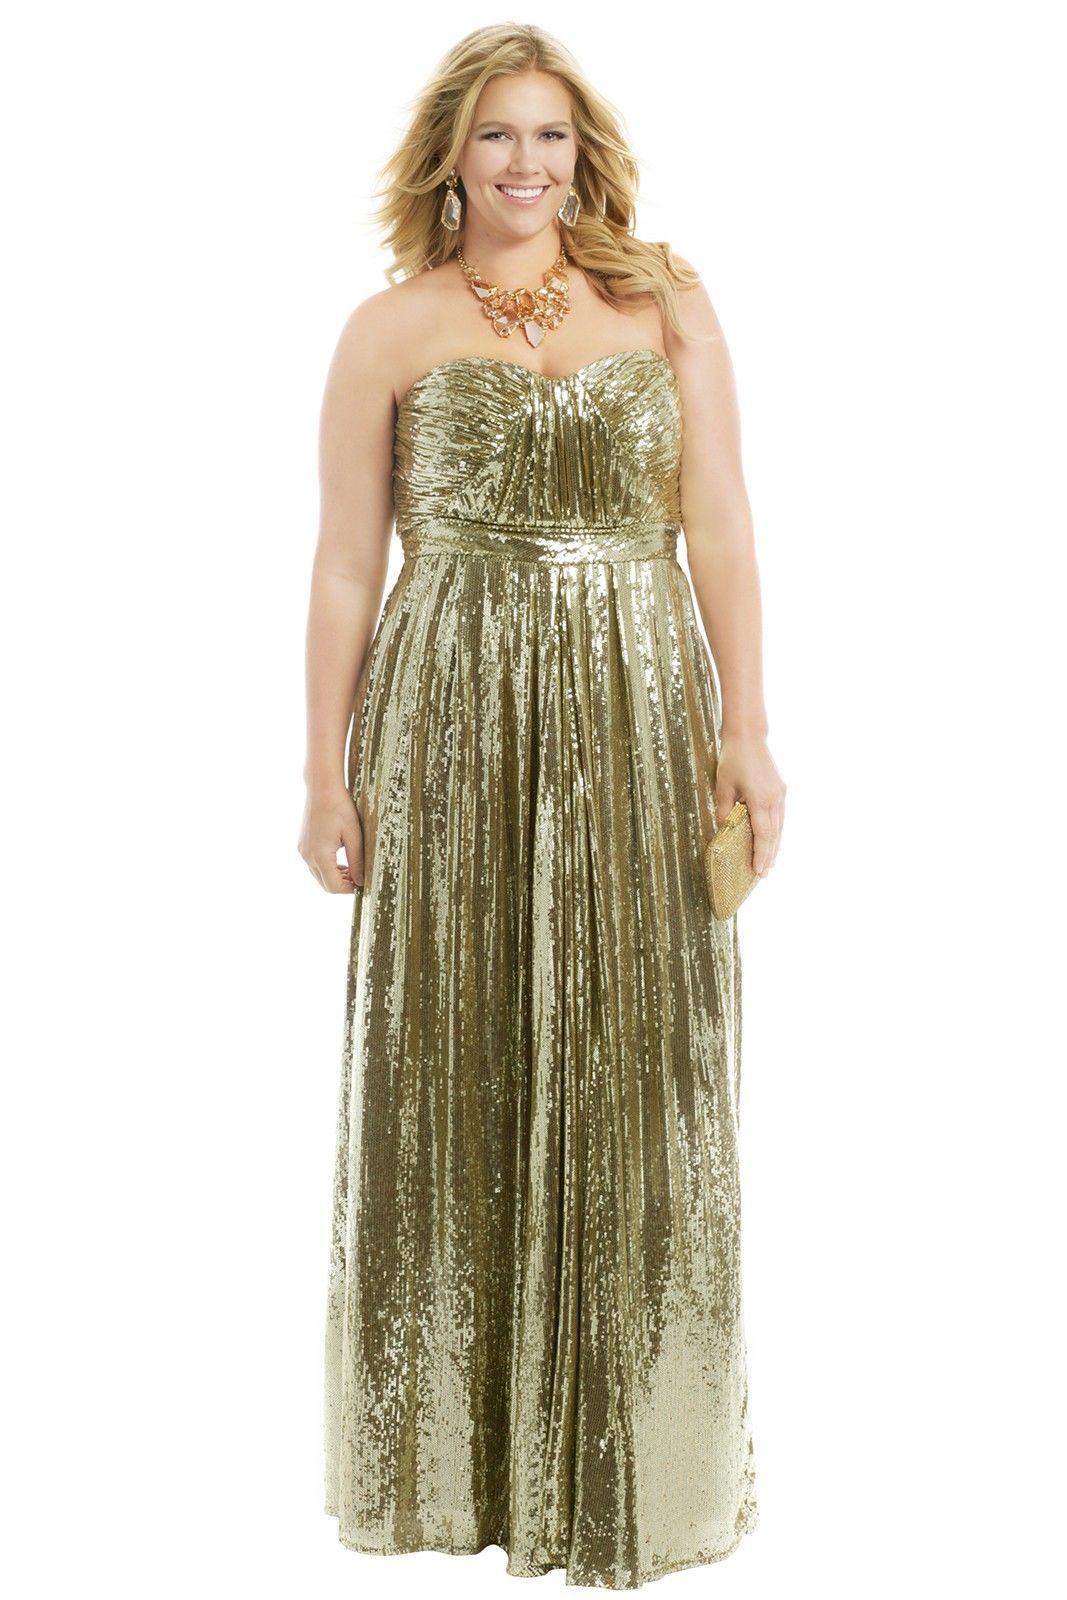 Where can i rent a wedding dress  Rent The Runway Plus Size  Formal Wear For Curvy Women  Wedding